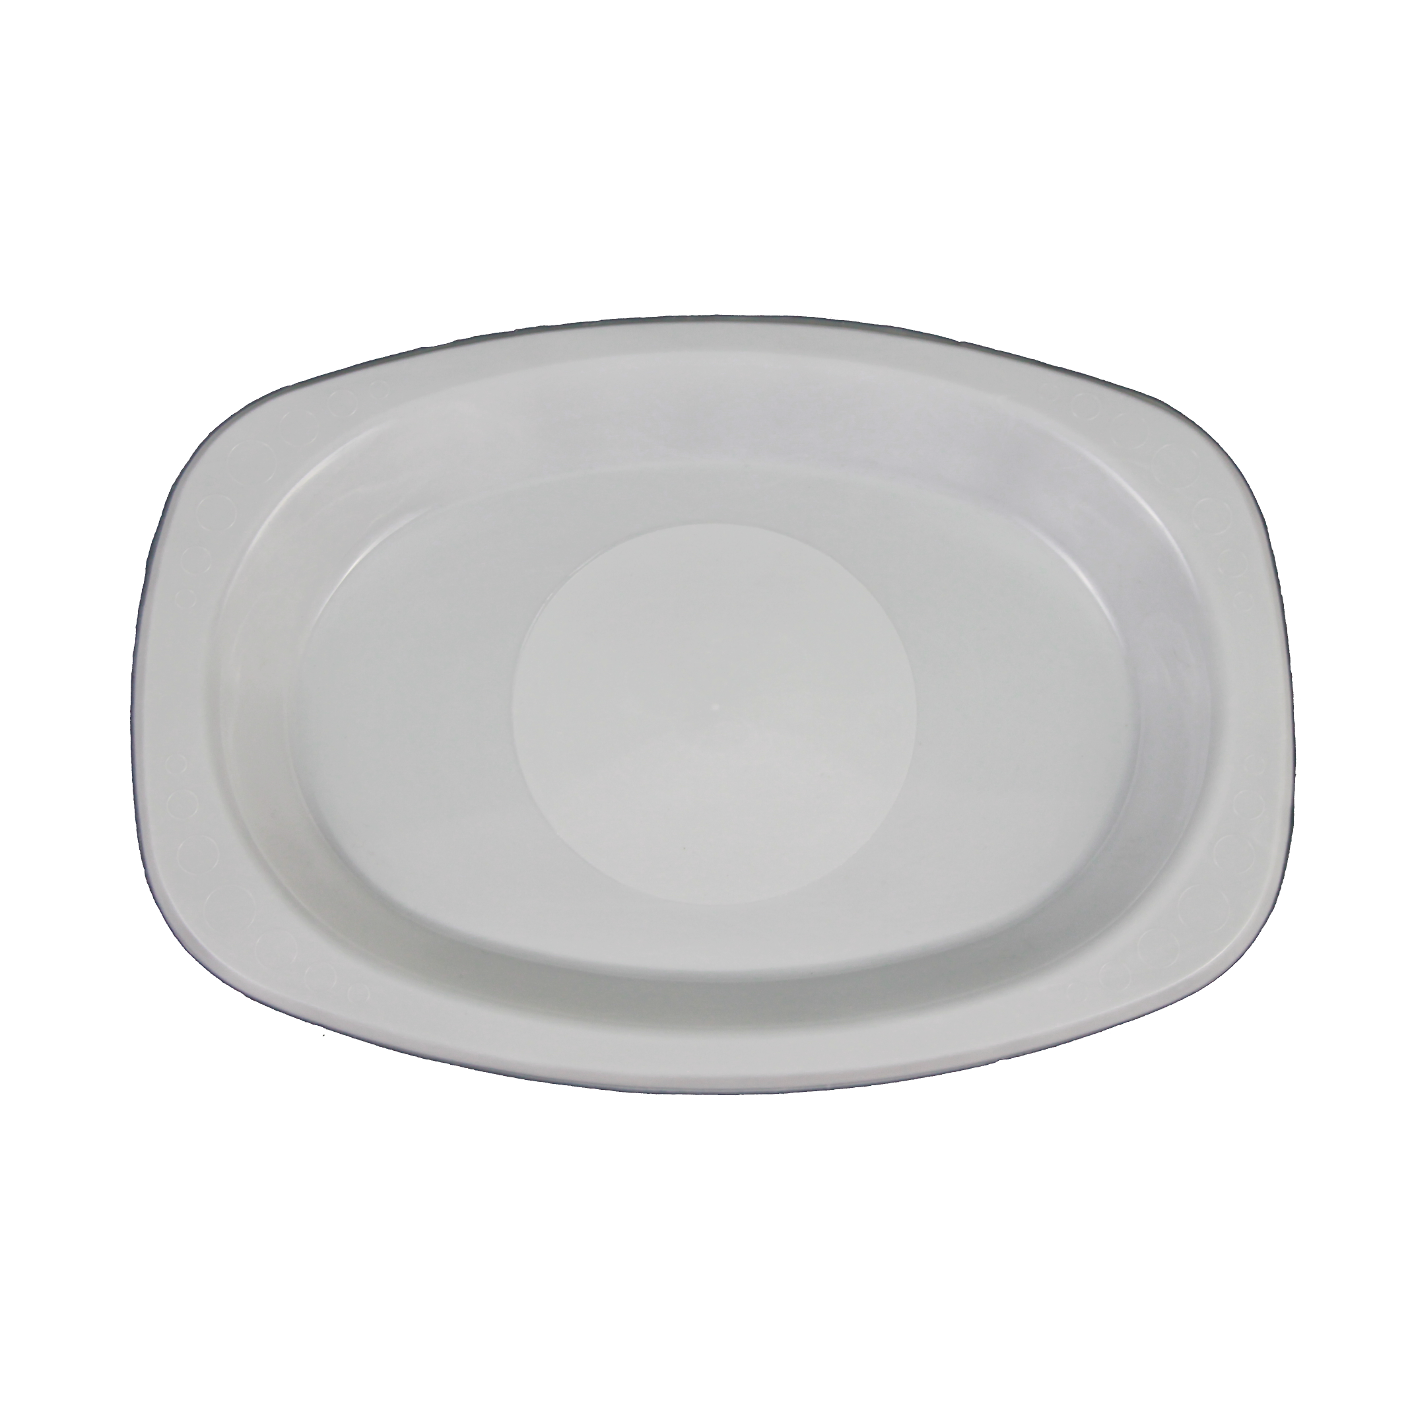 Genfac Oval Plate Large White 210X300mm